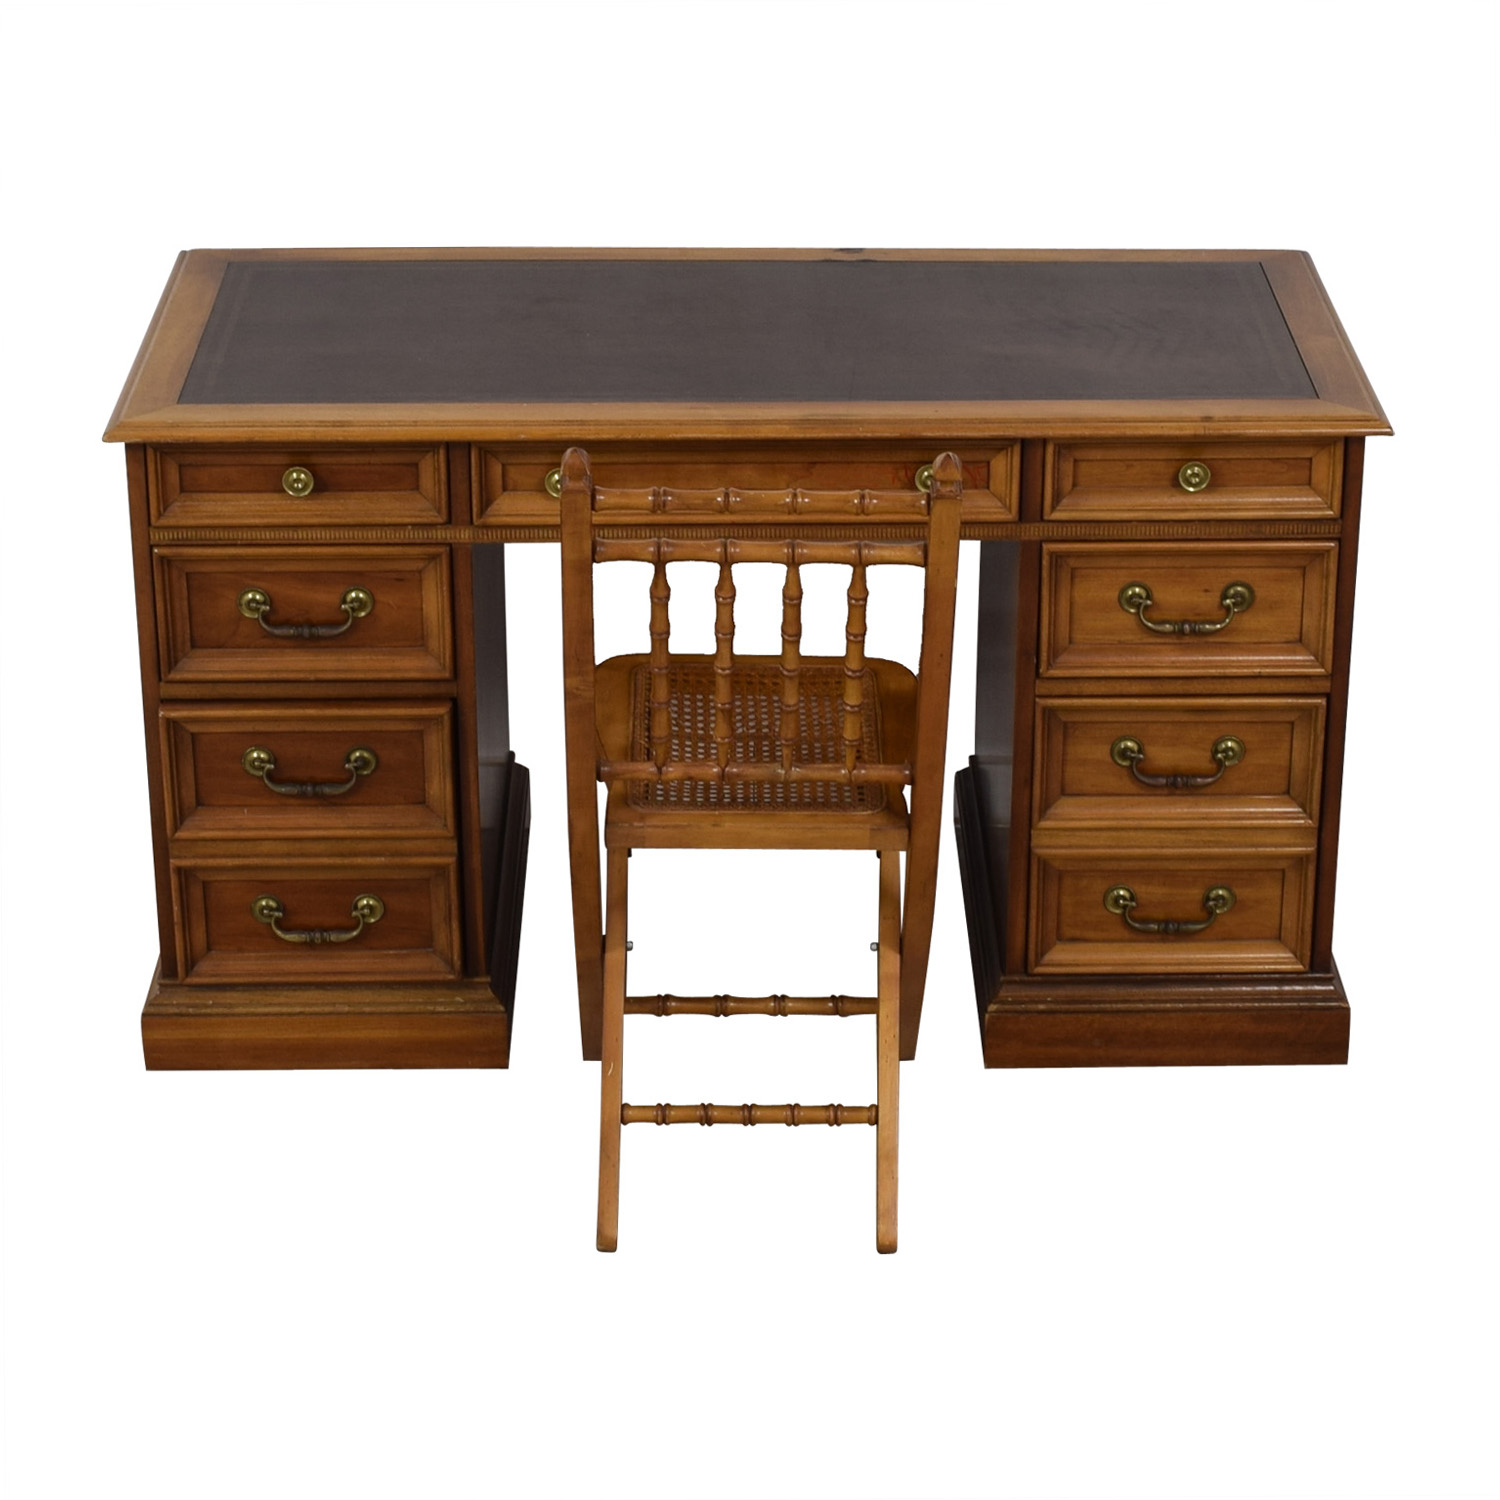 Vintage Writing Desk with Chair used